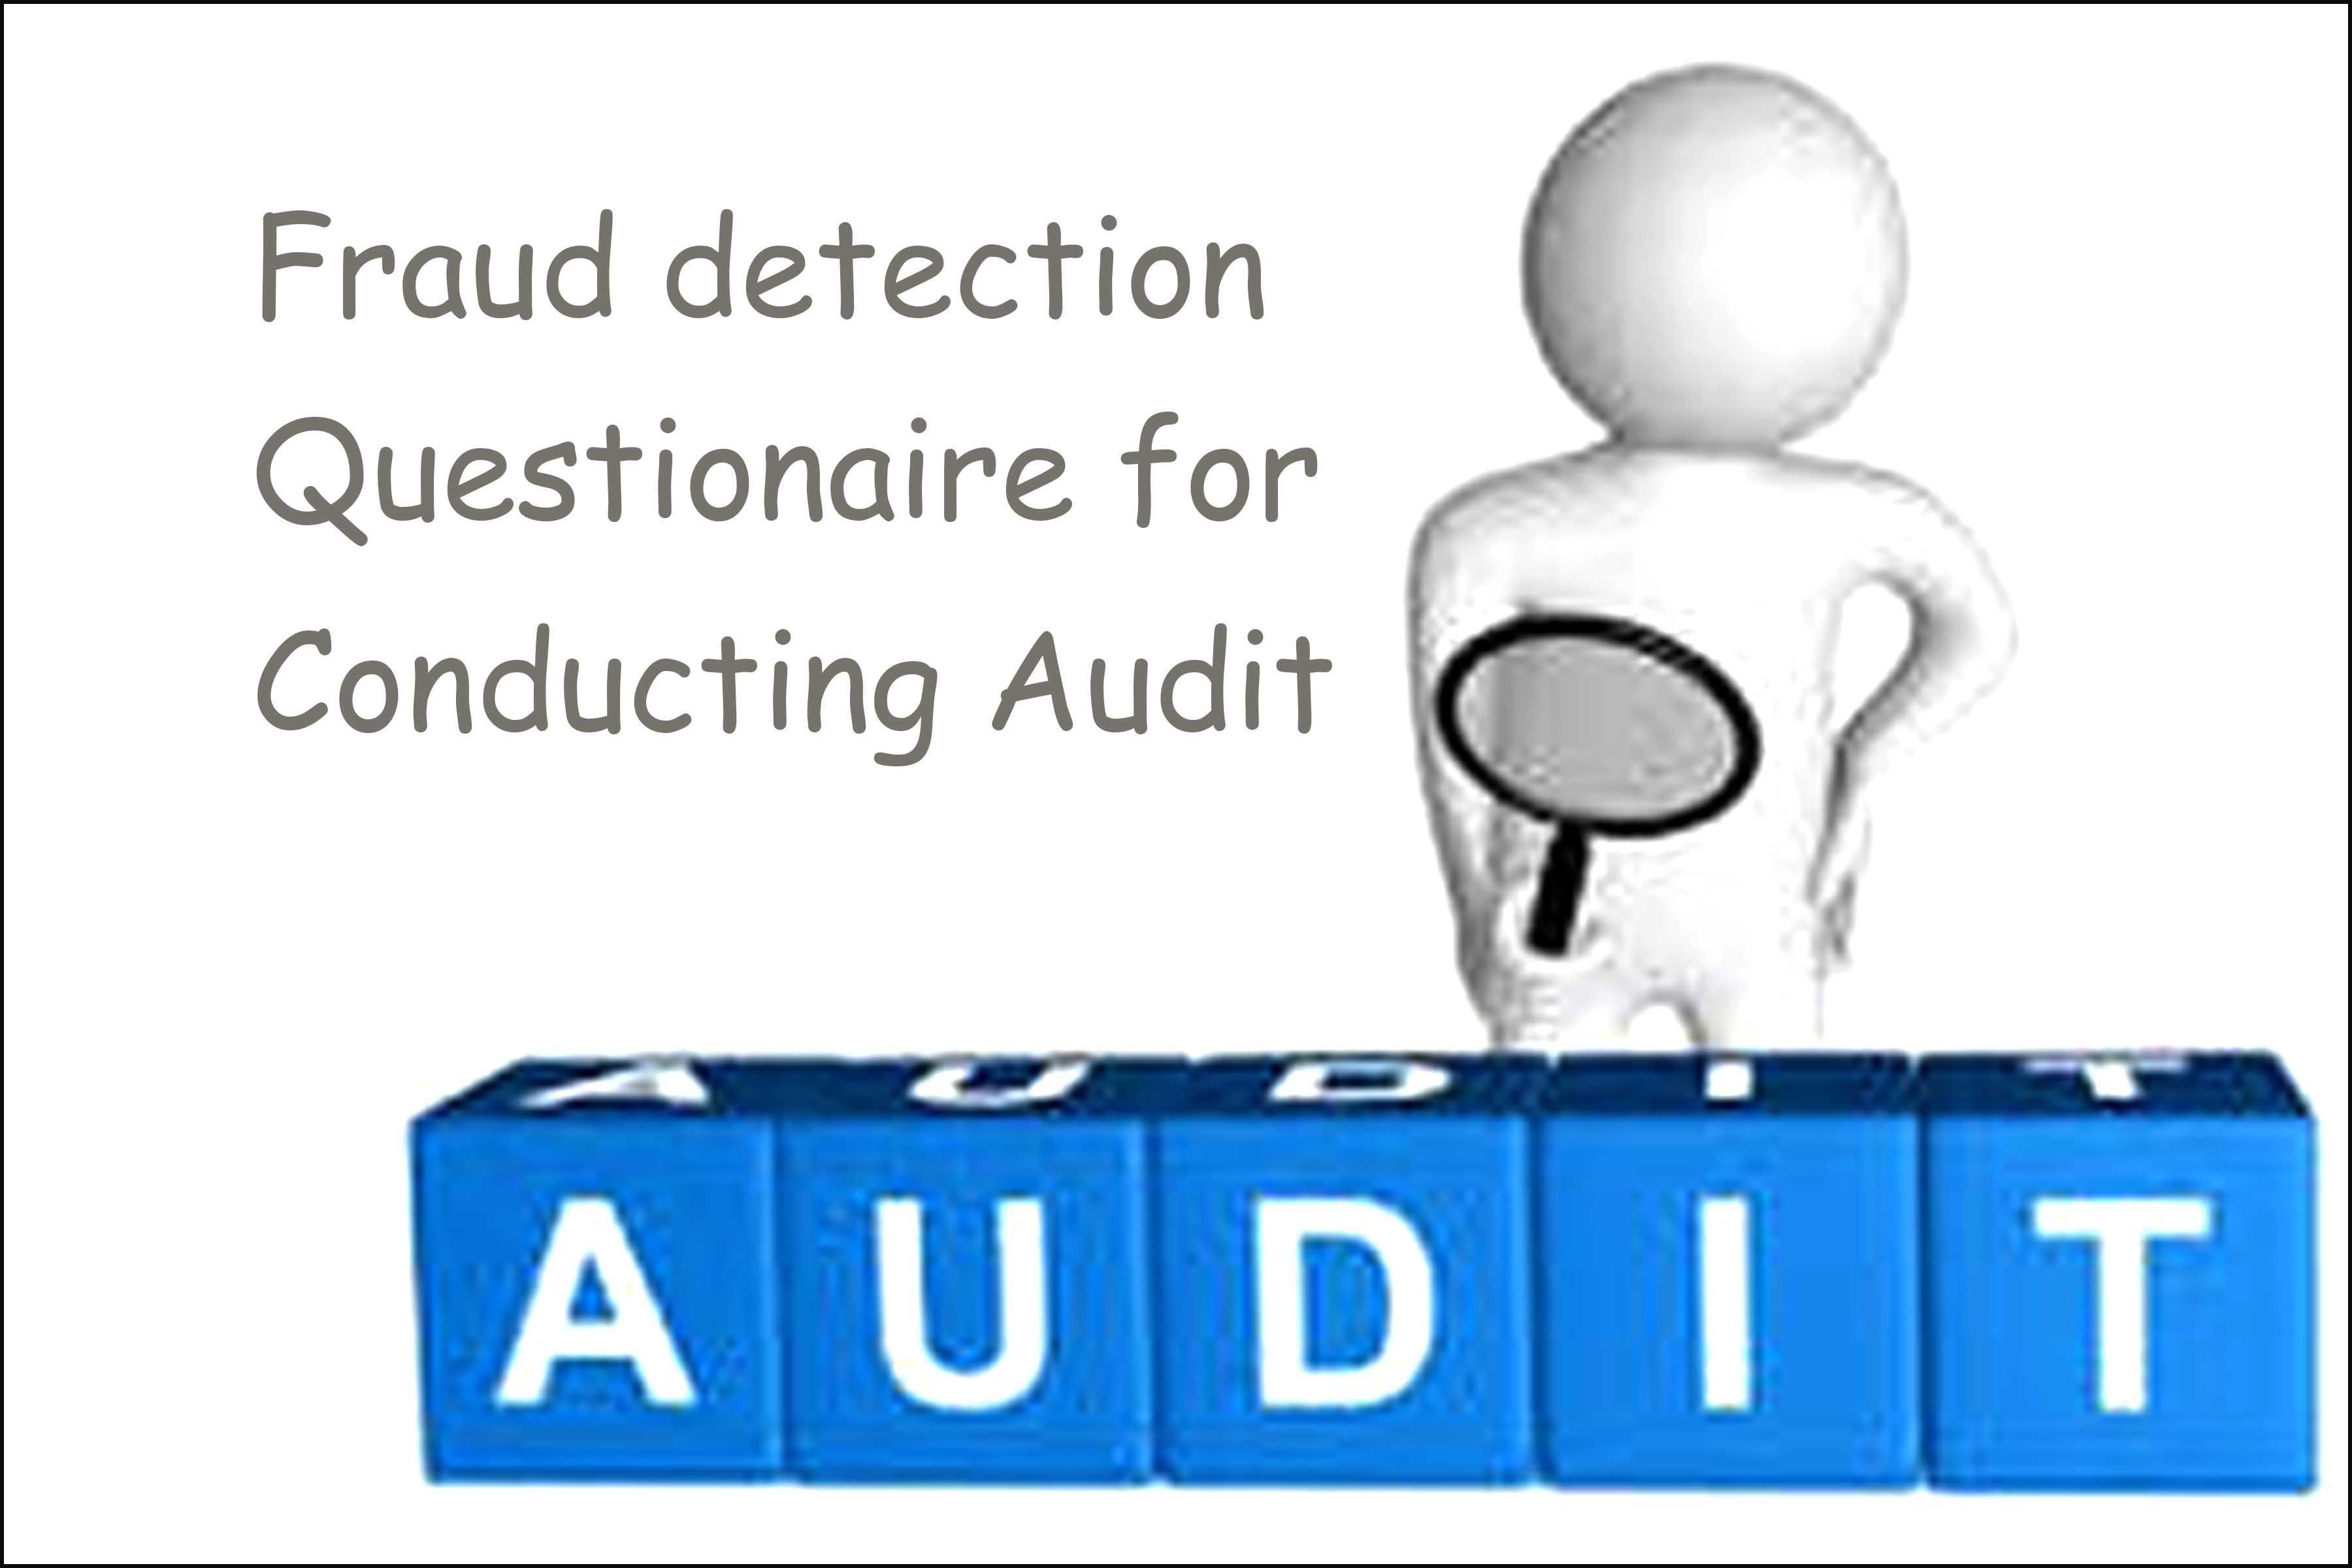 Fraud Detection Questionnaire for Conducting Audit